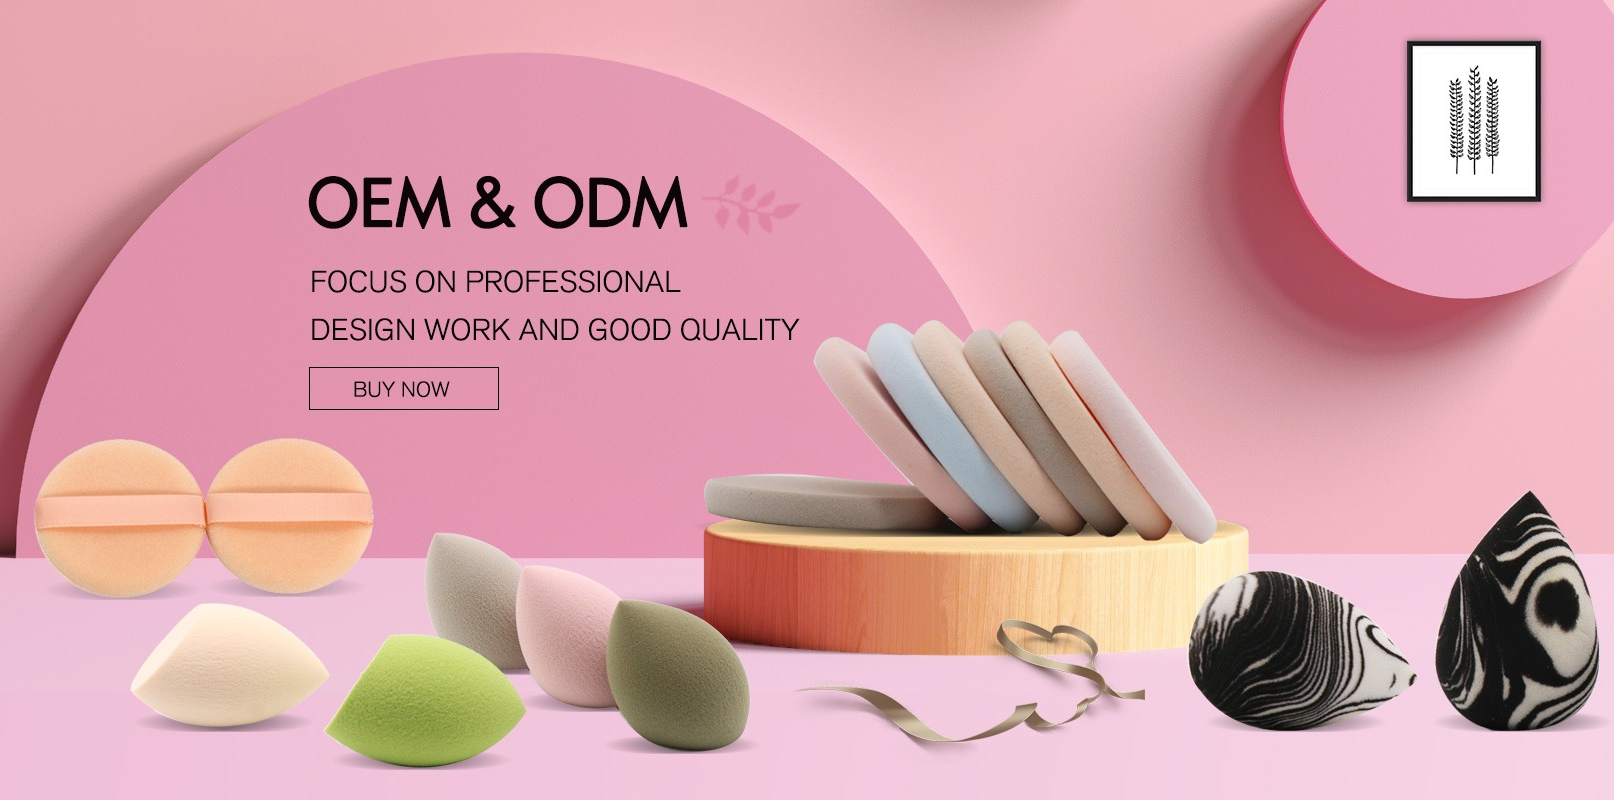 Artemis makeup tools wholesales faq